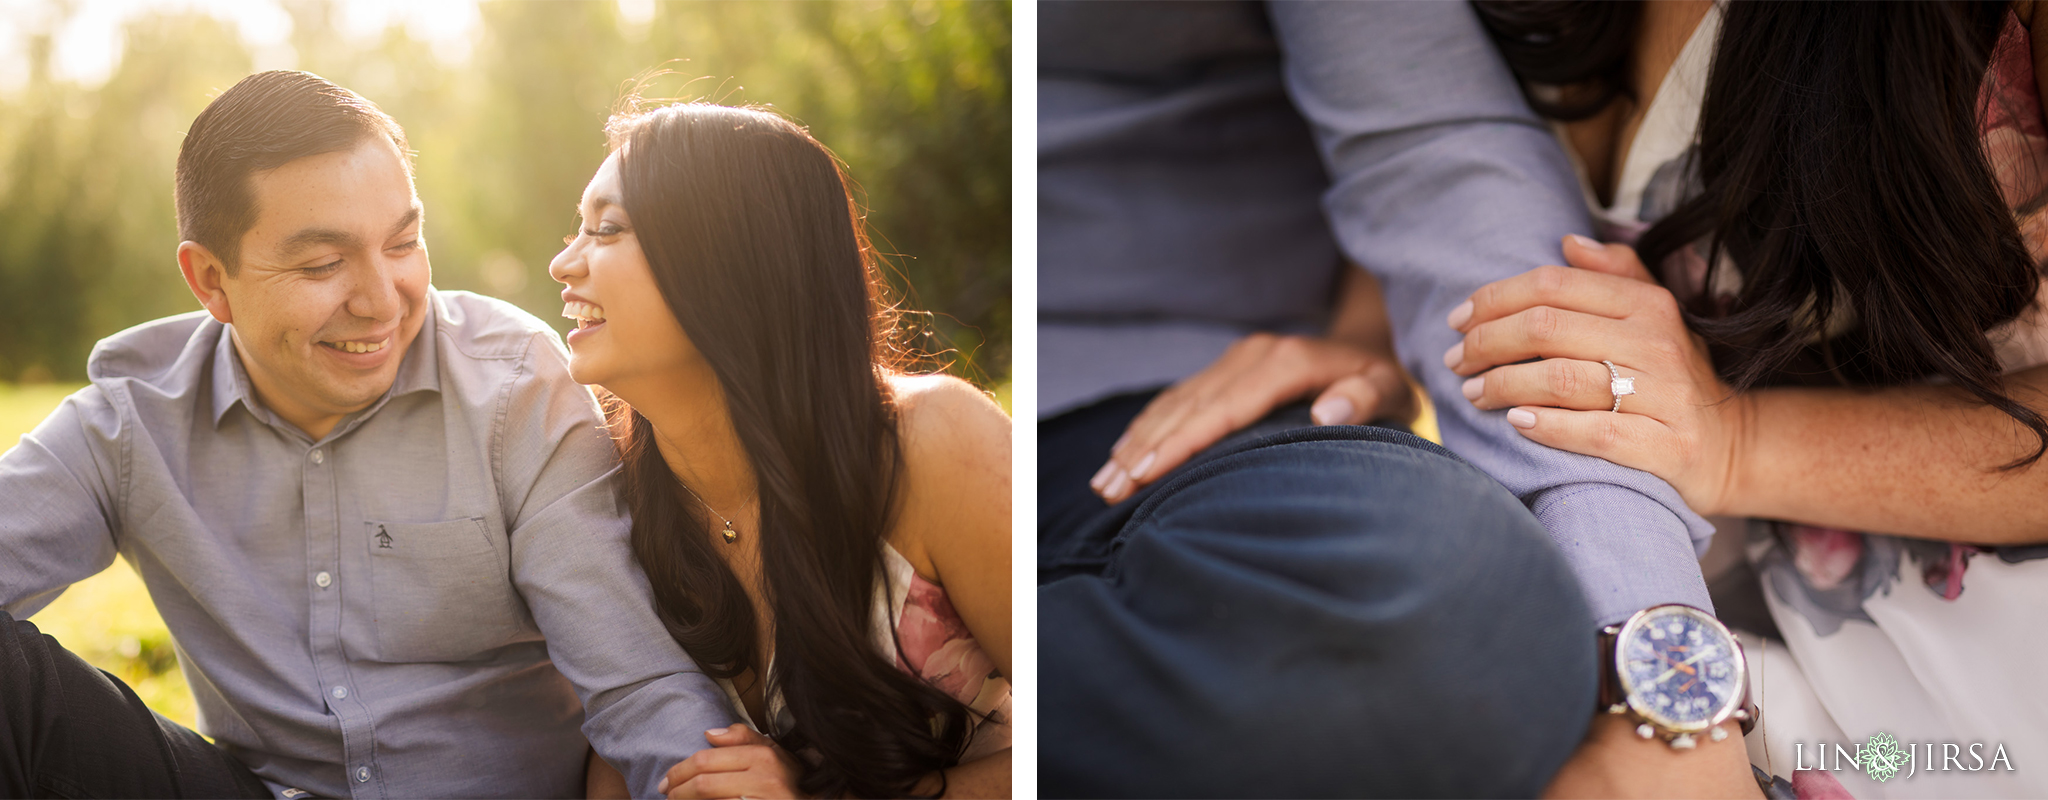 05 Jeffrey Open Space Trail Orange County Engagement Photography